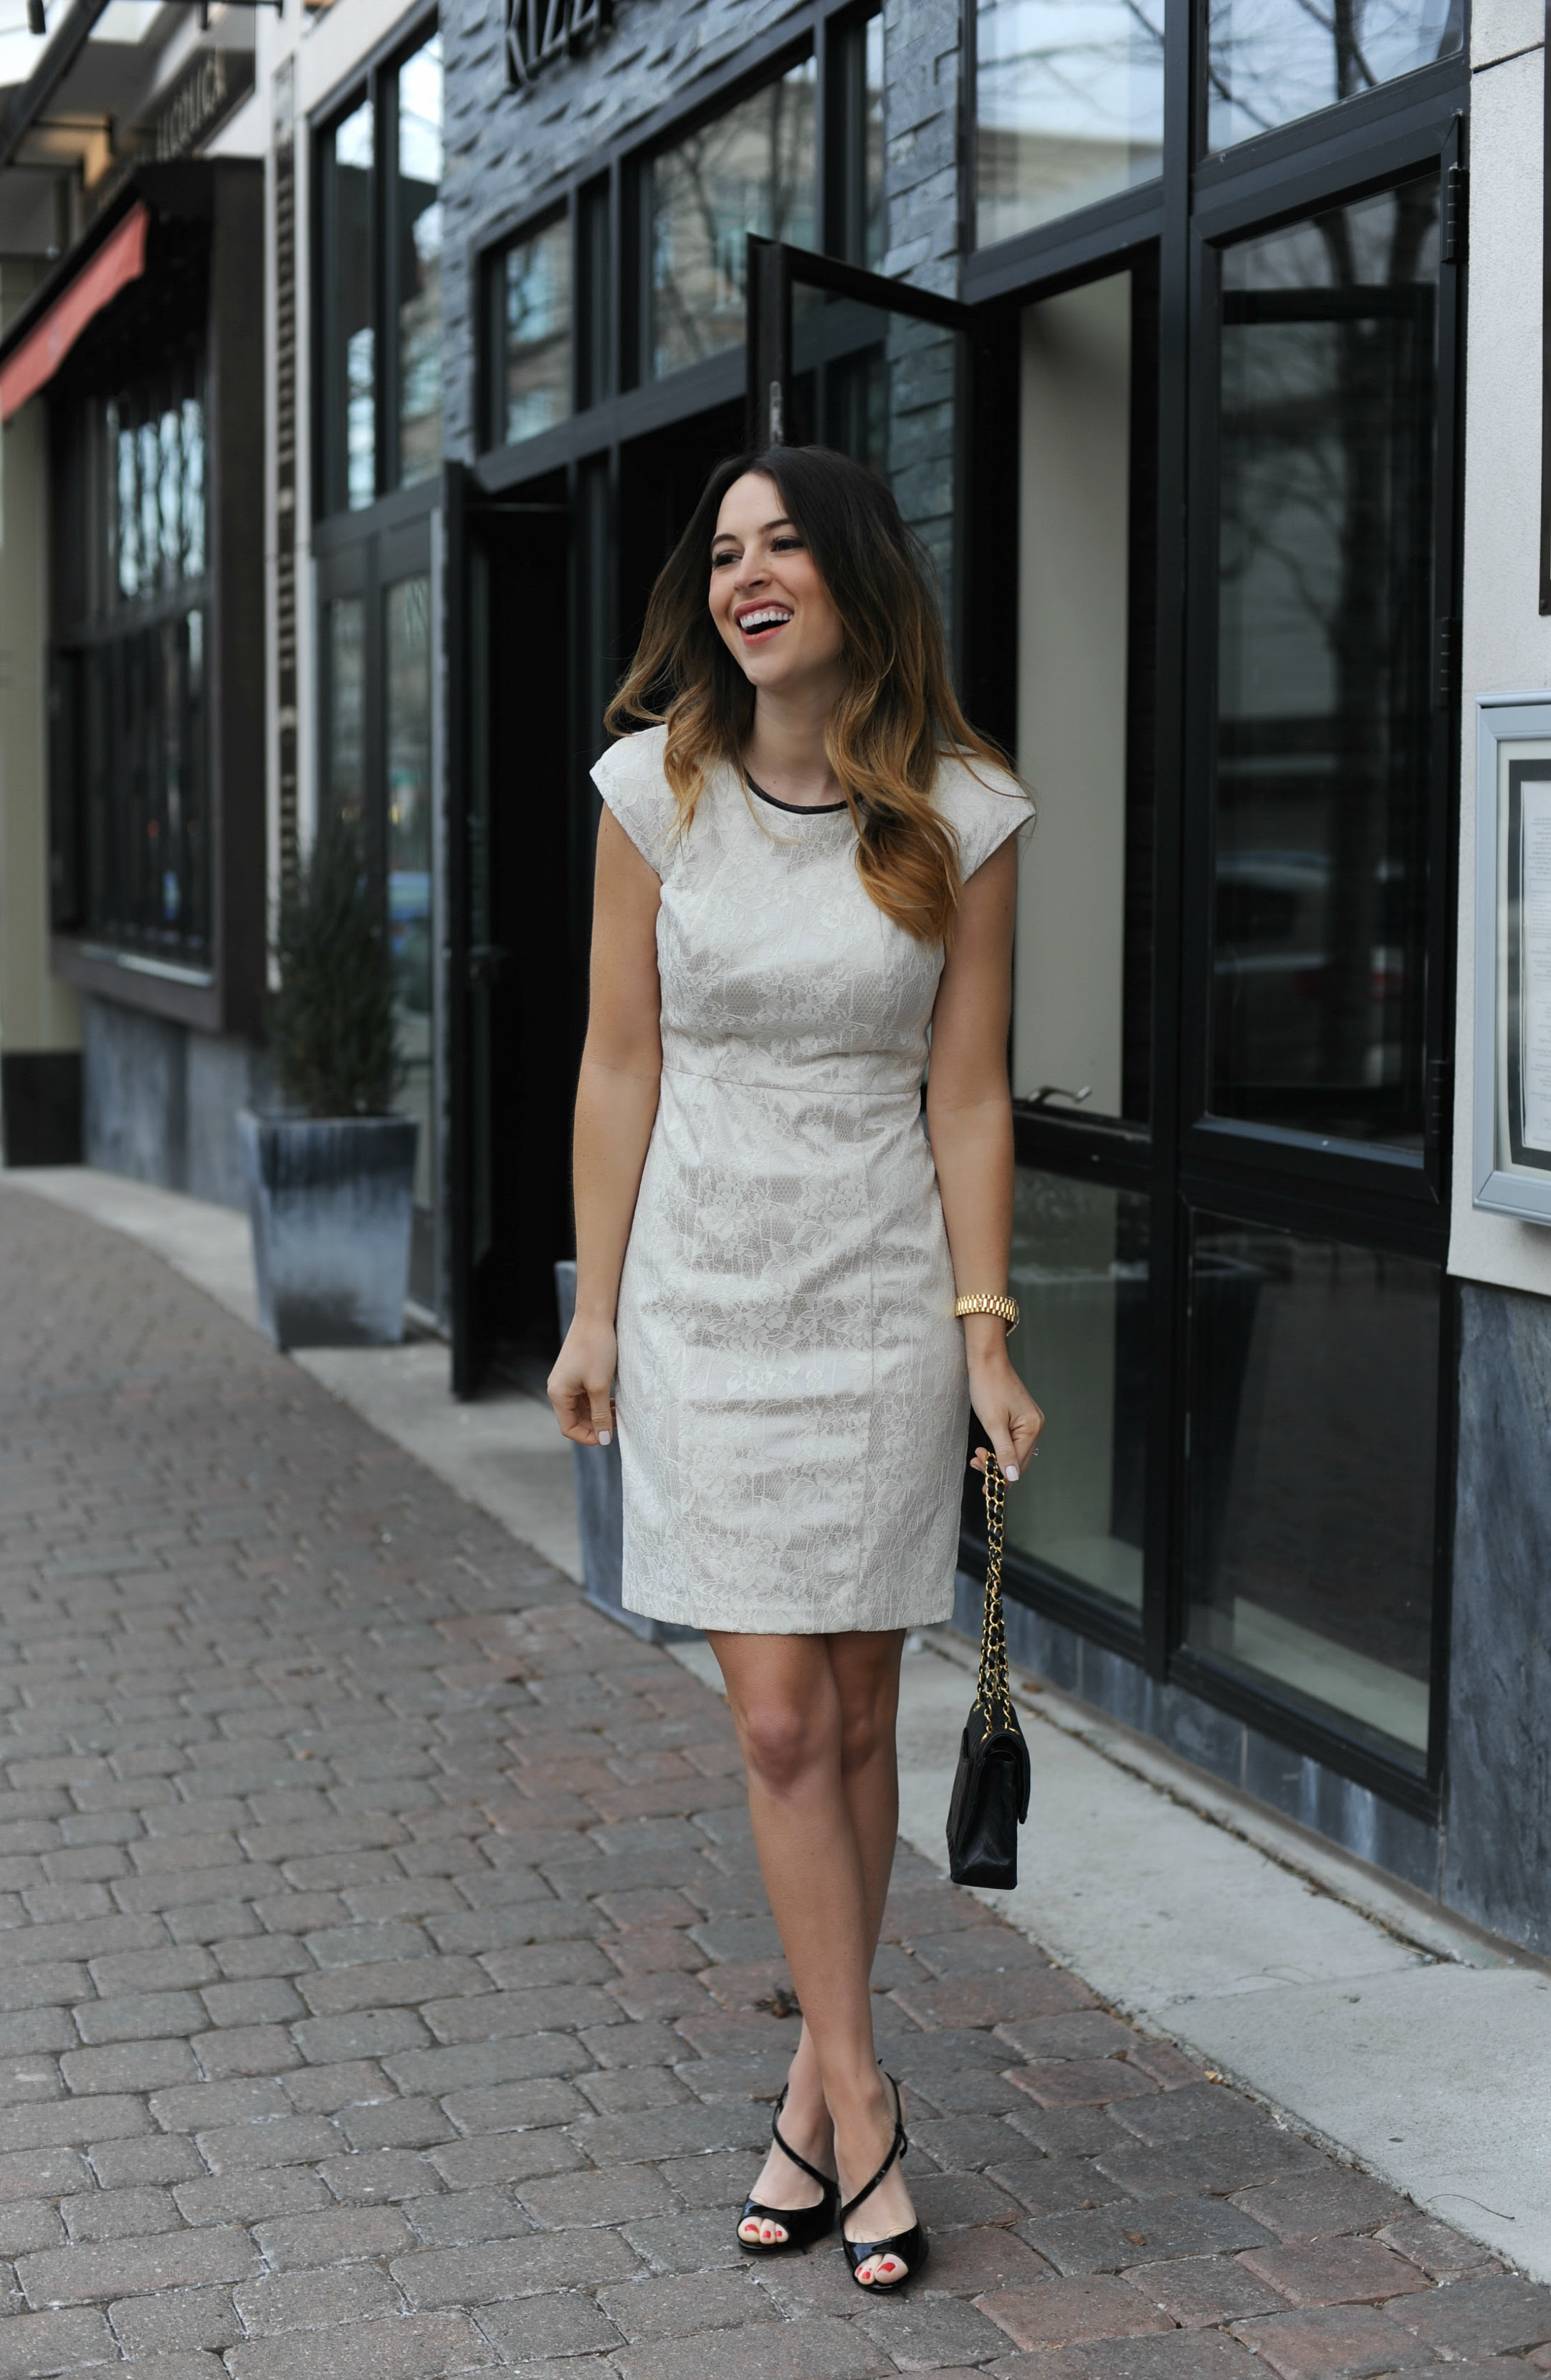 stylish fall engagement party outfit ideas – the wow style